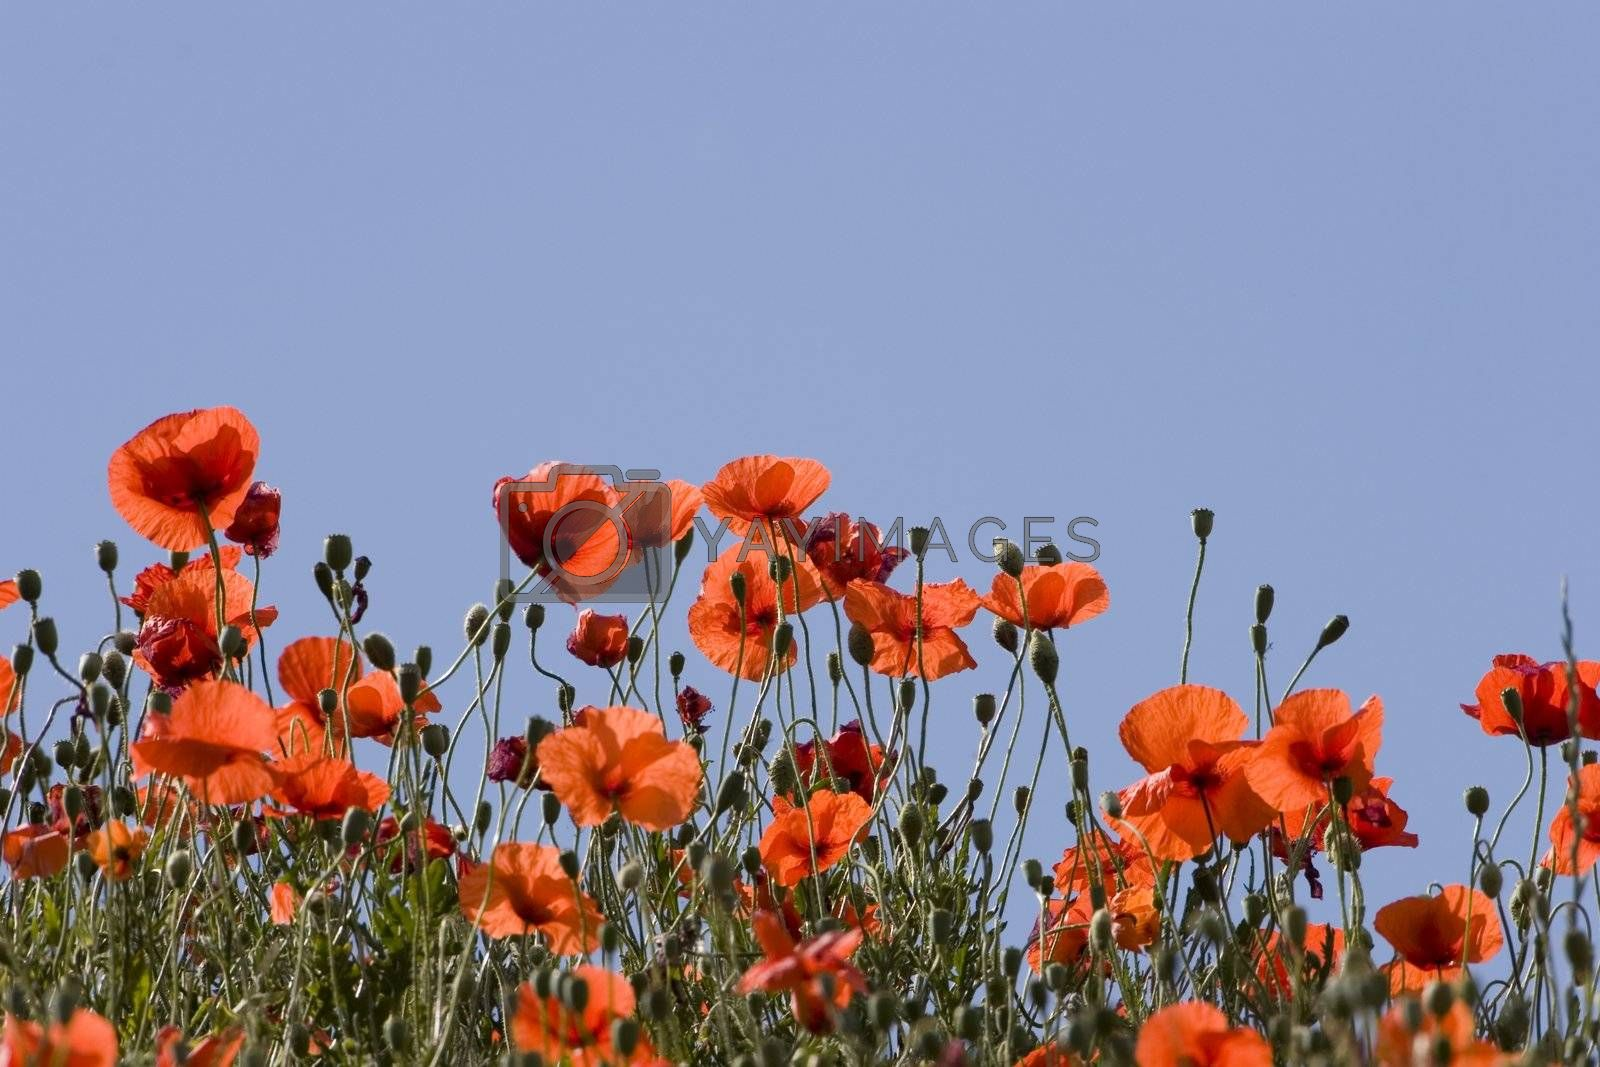 Poppies in the sun by ArtmannWitte